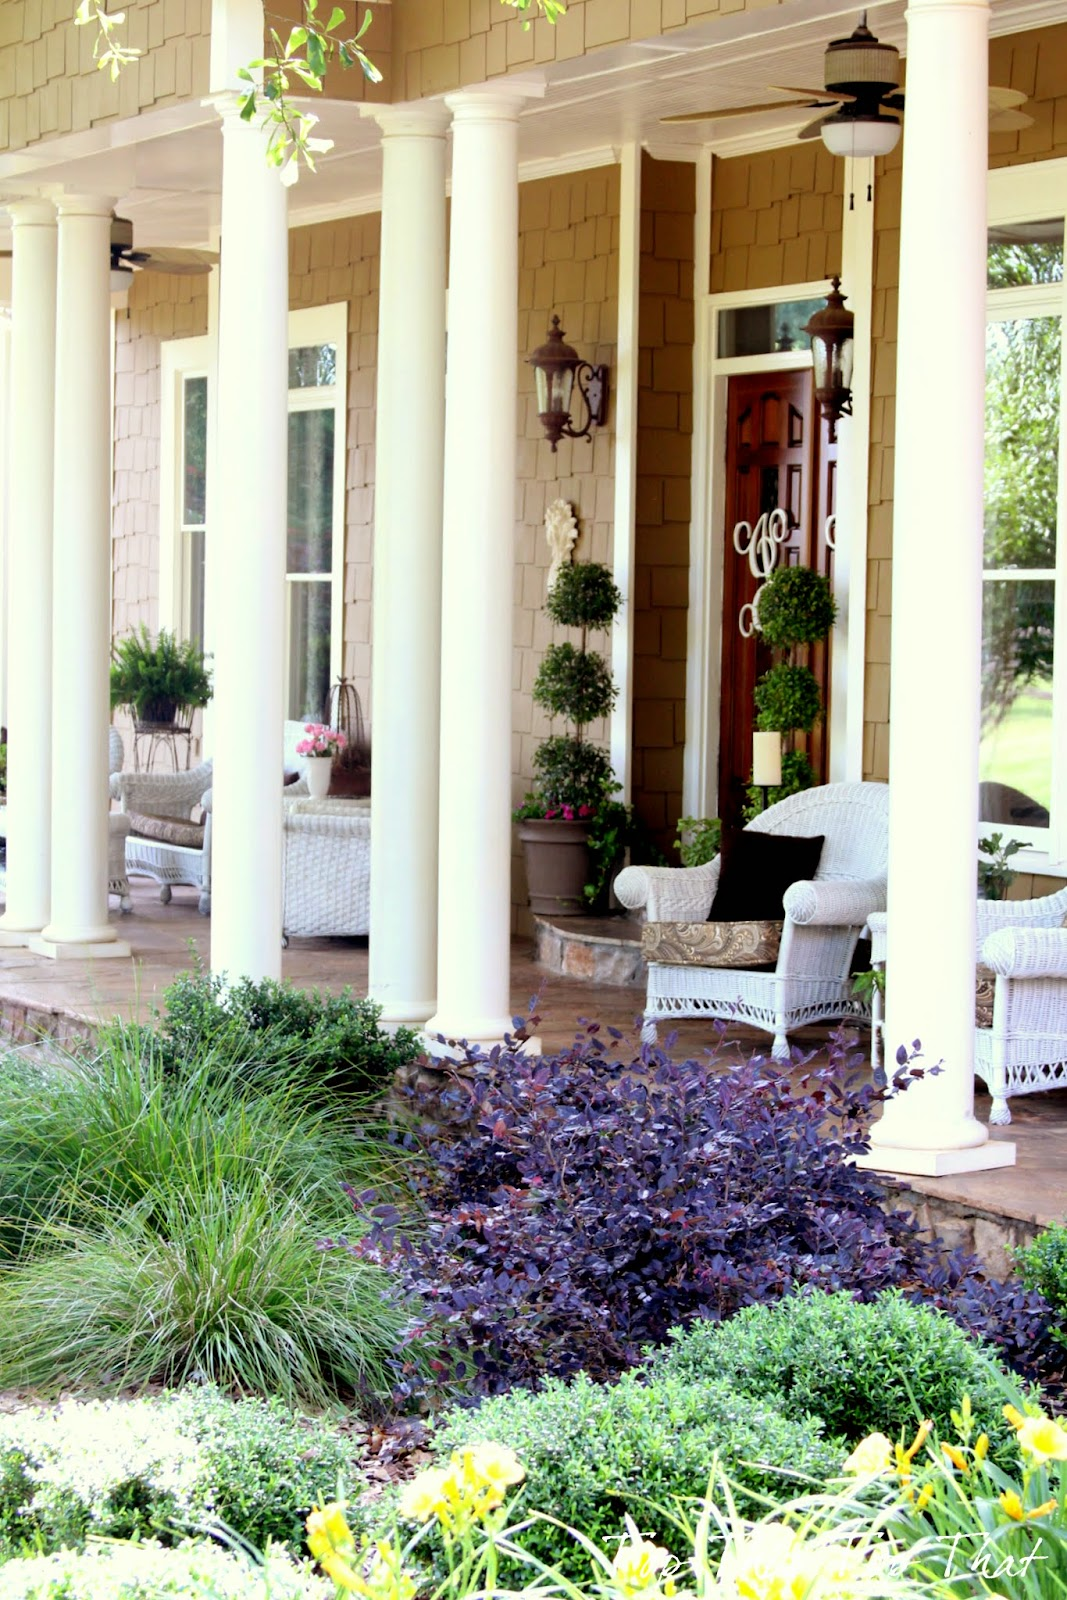 My Summer 'Southern' Front Porch - Duke Manor Farm